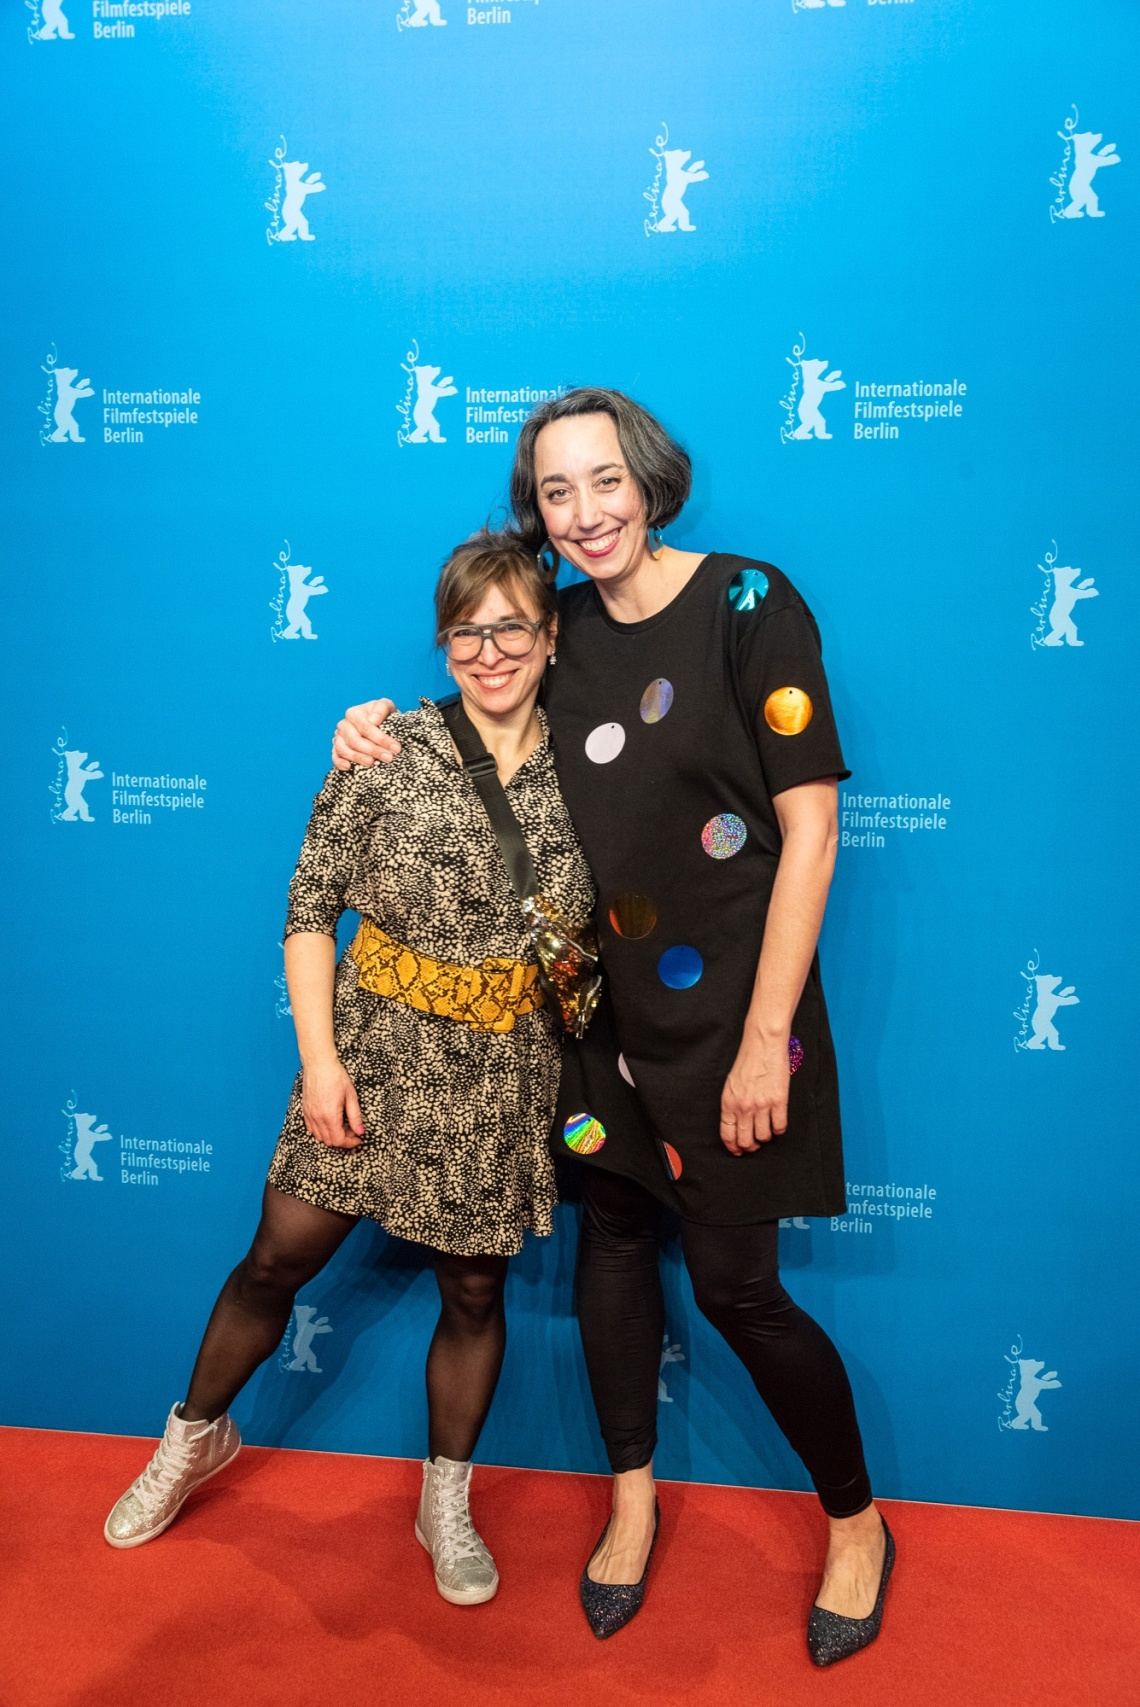 Berlinale Shorts 2019